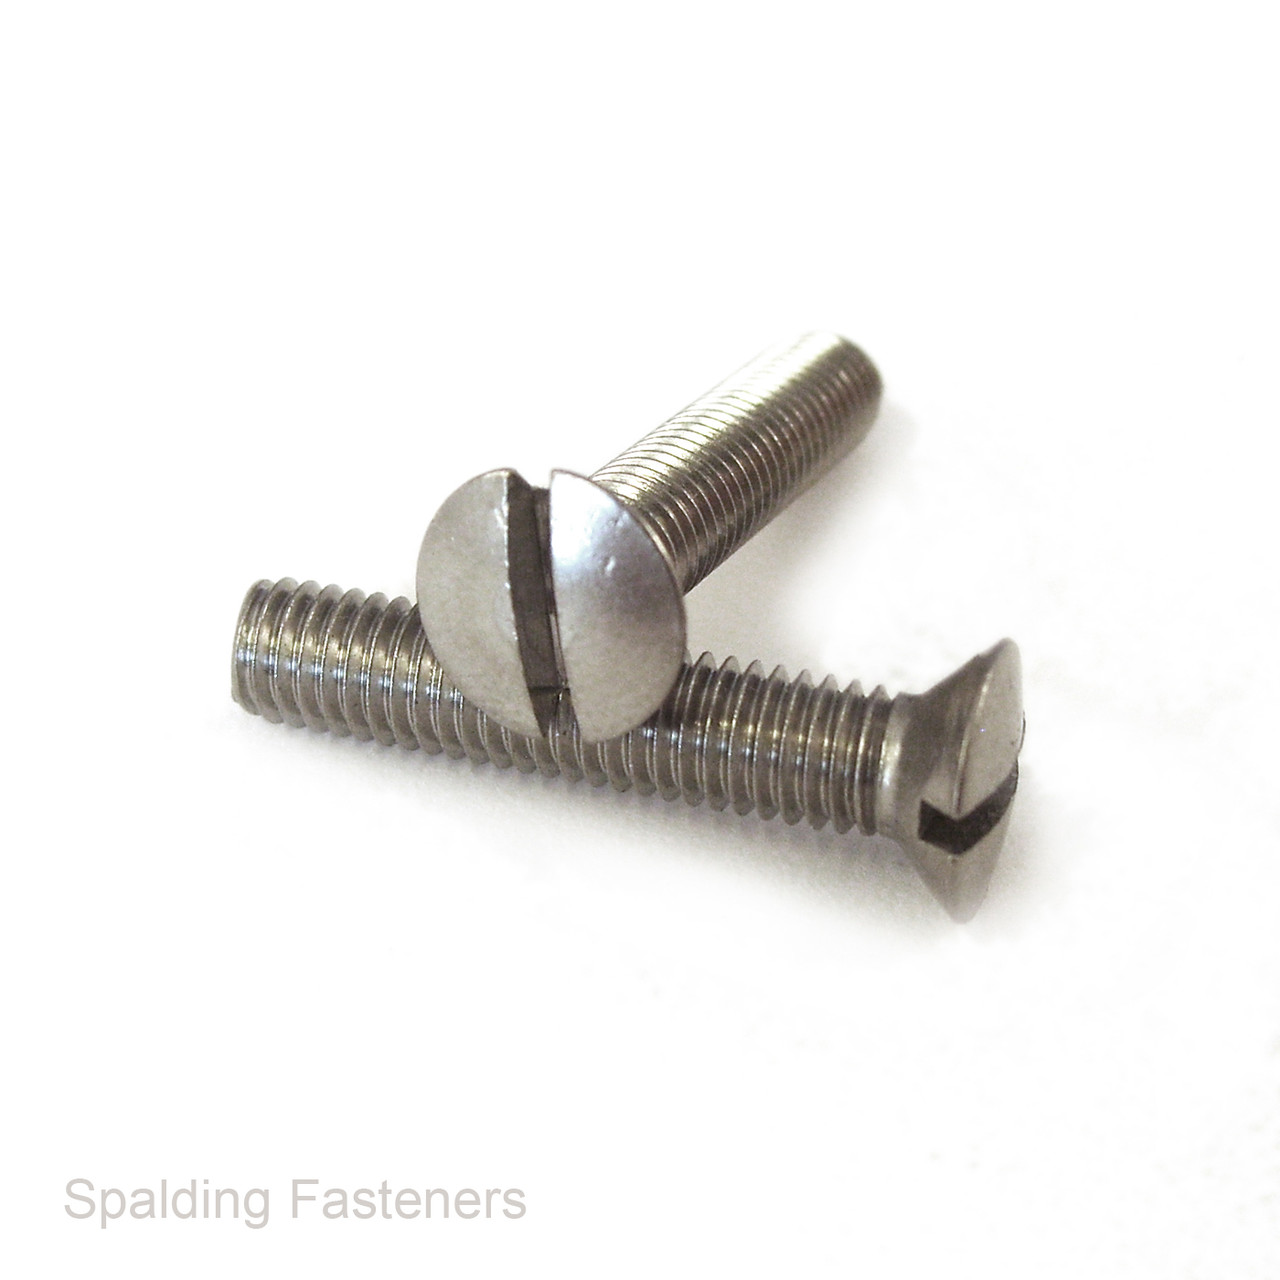 2BA 25mm Slotted round head machine bolt screws with nuts Pack of 25!